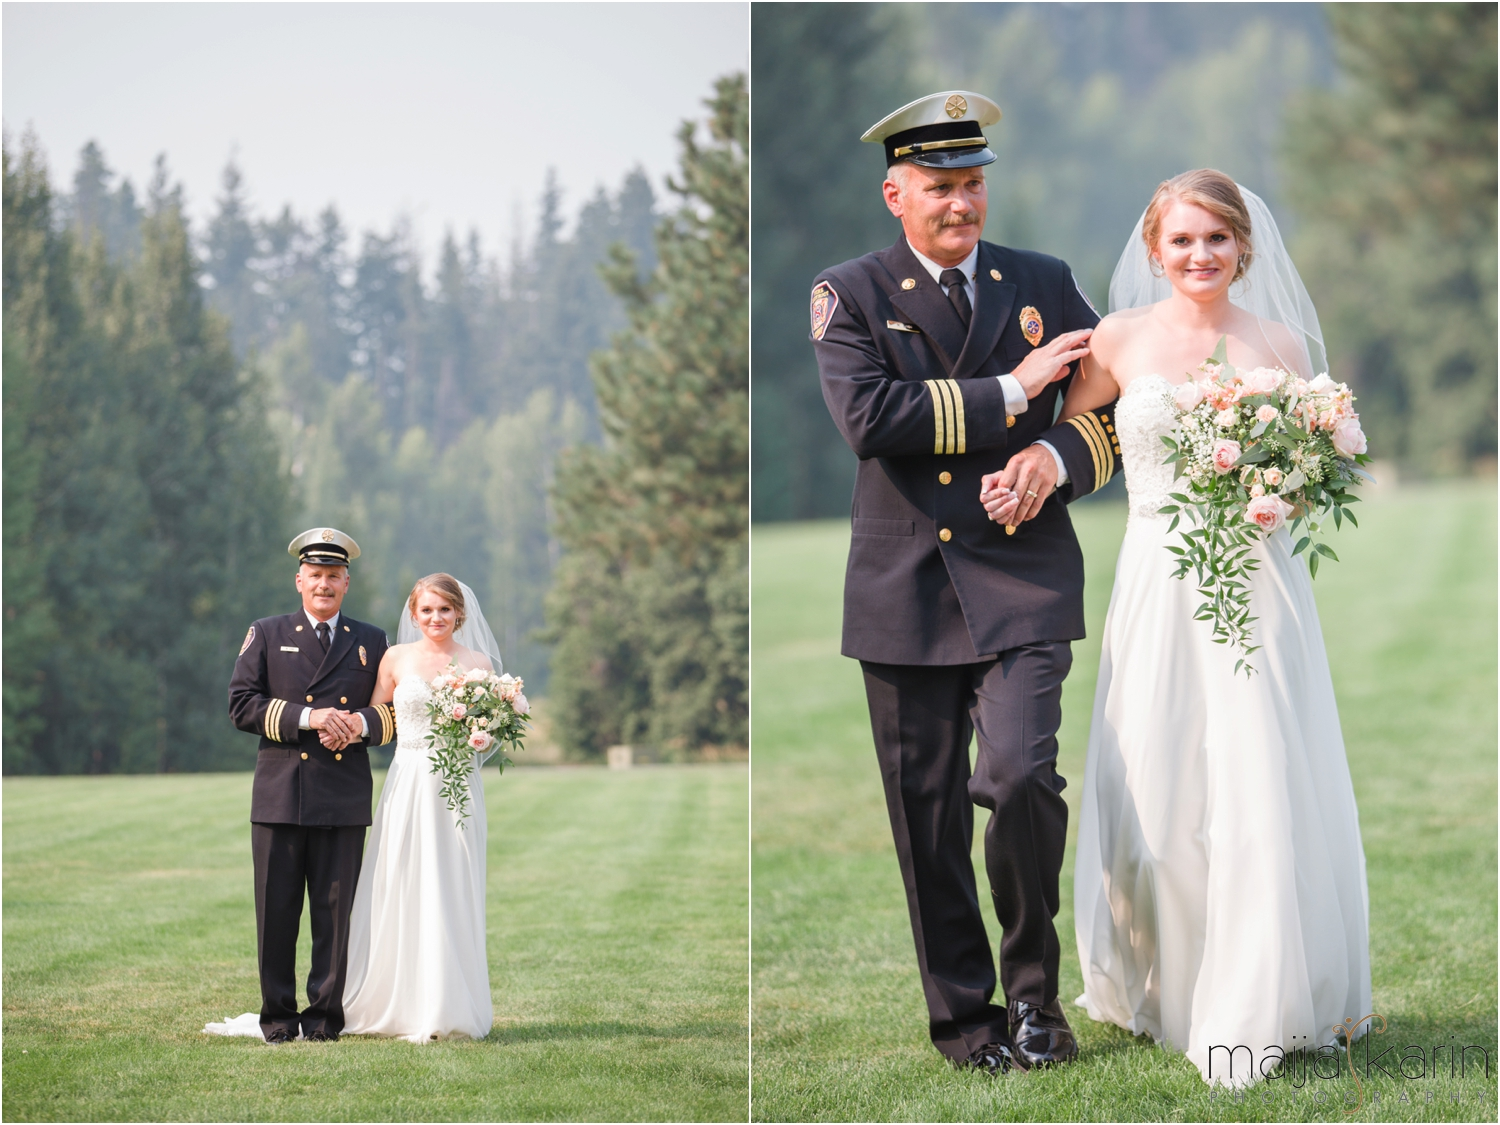 Mountain-Springs-Lodge-Wedding-Maija-Karin-Photography_0028.jpg